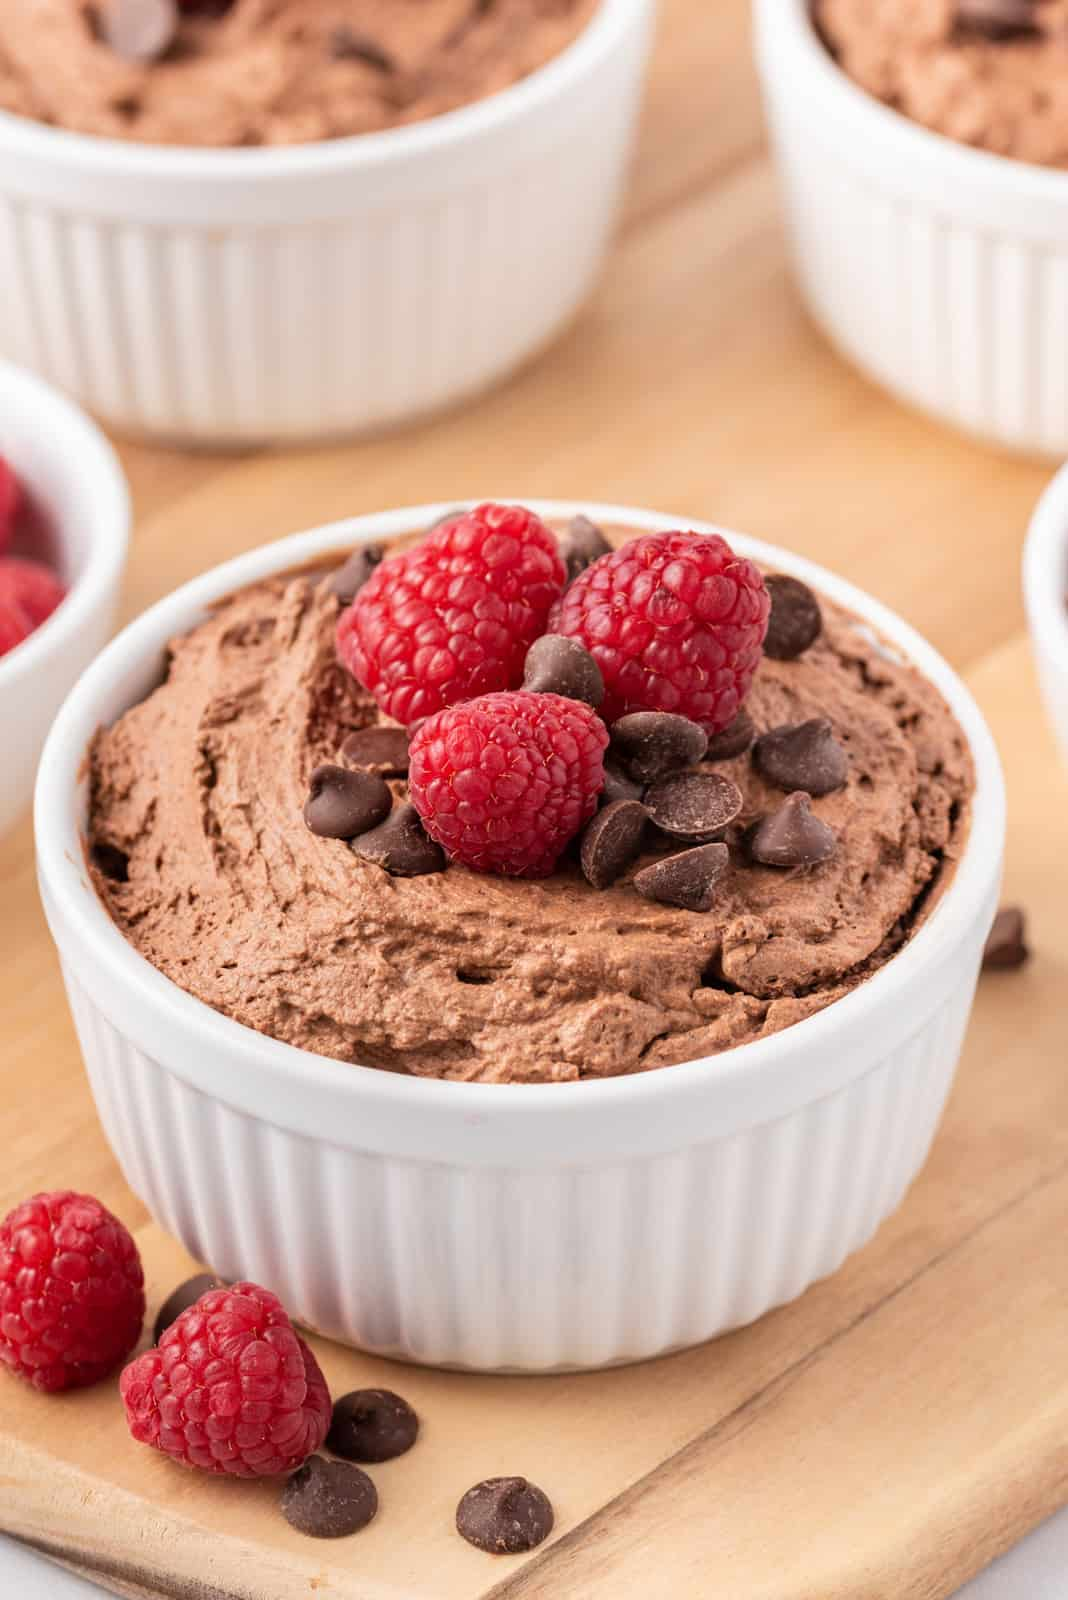 Chocolate Mousse in white ramekin topped with chocolate chips and raspberries